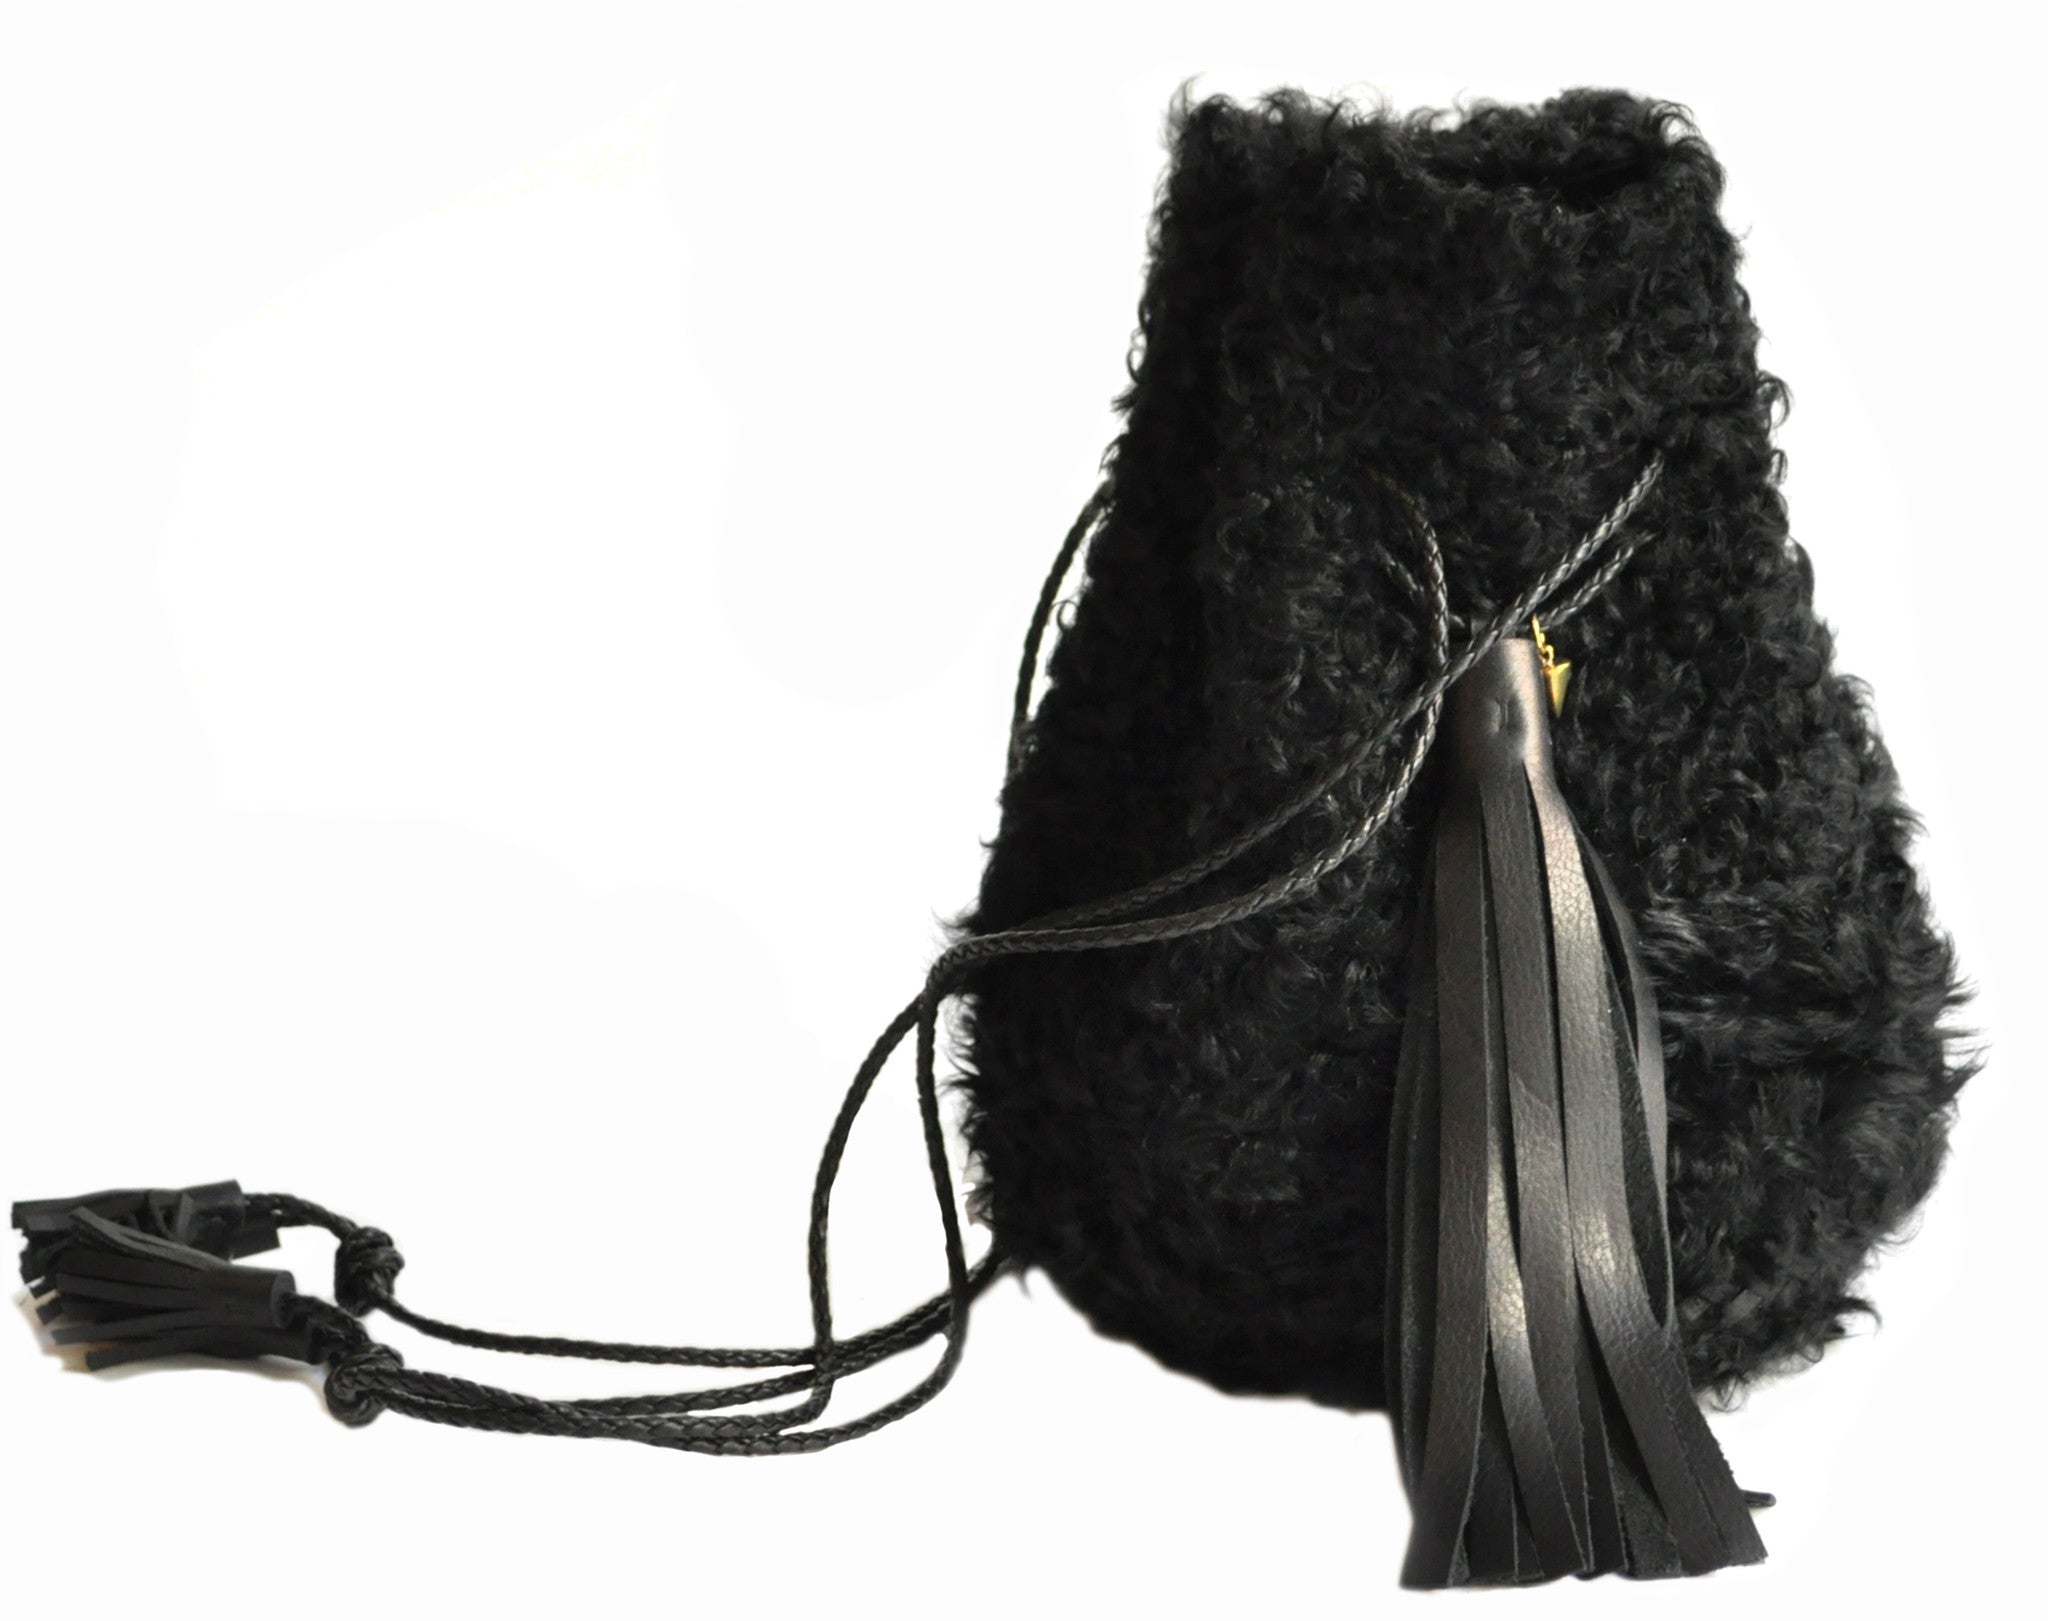 Shearling Curl Cow Leather Bullet Bag Wendy Nichol Handbag Purse Designer Handmade in NYC Bucket Bag Fur Furry